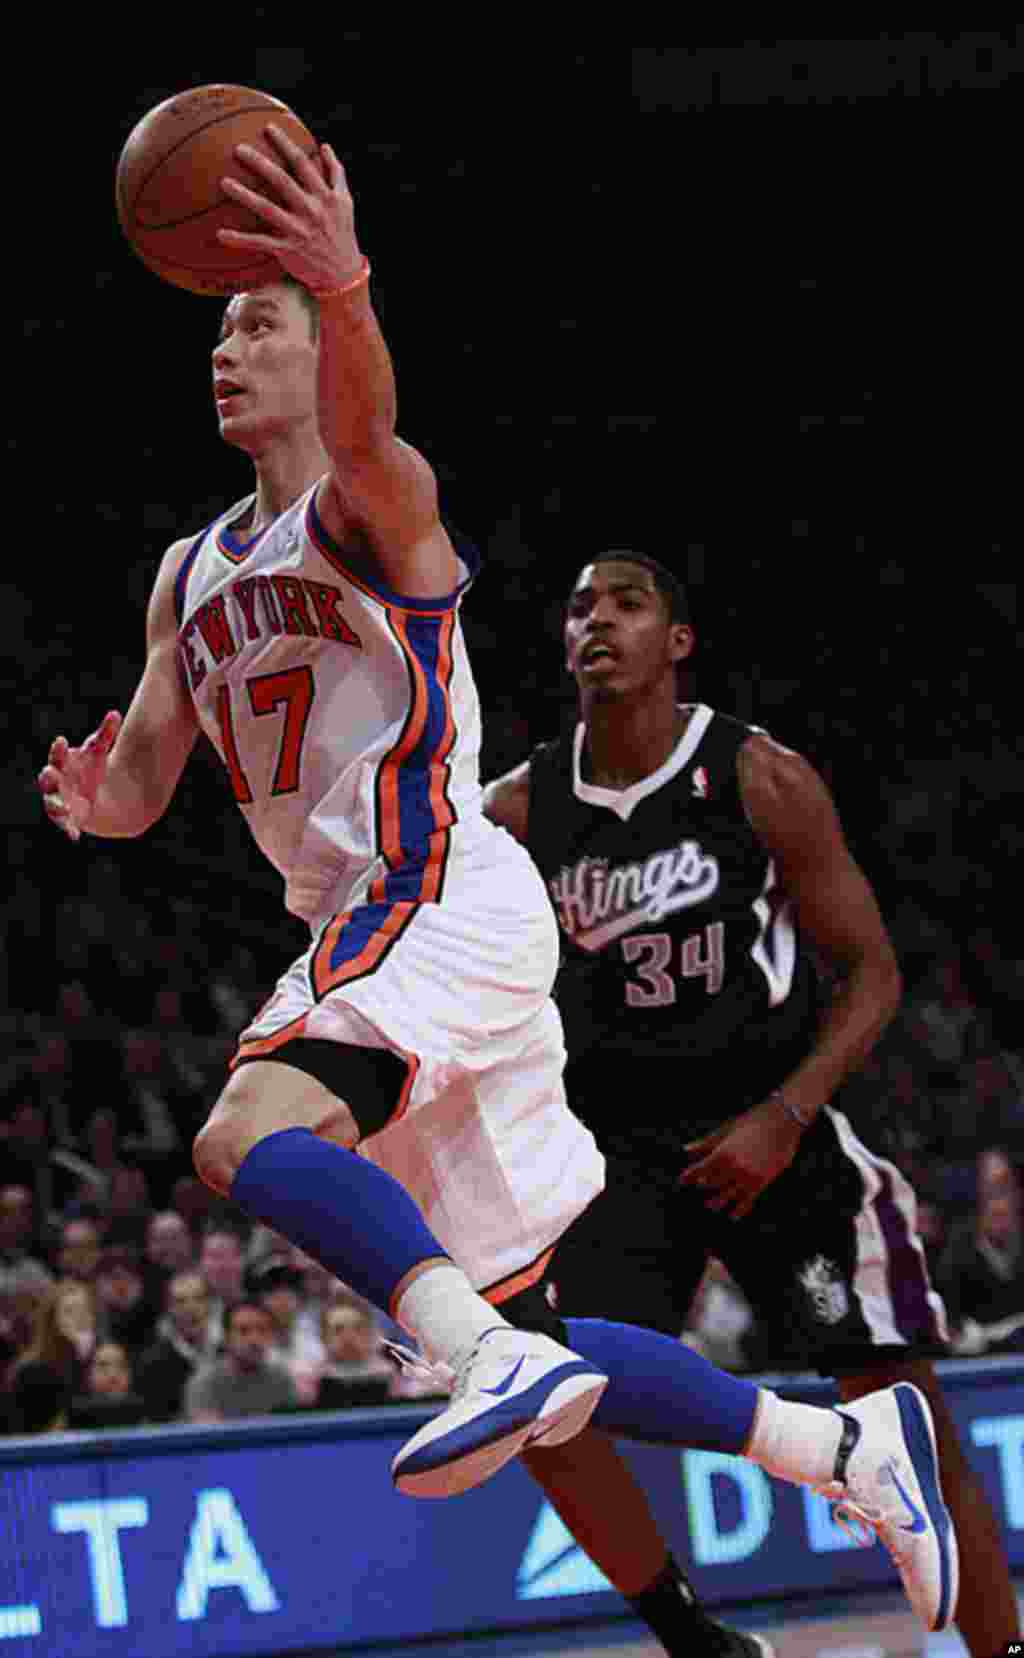 New York Knicks' Jeremy Lin drives past Sacramento Kings' Jason Thompson during the first half of an NBA basketball game on February 15, 2012, in New York. (AP)